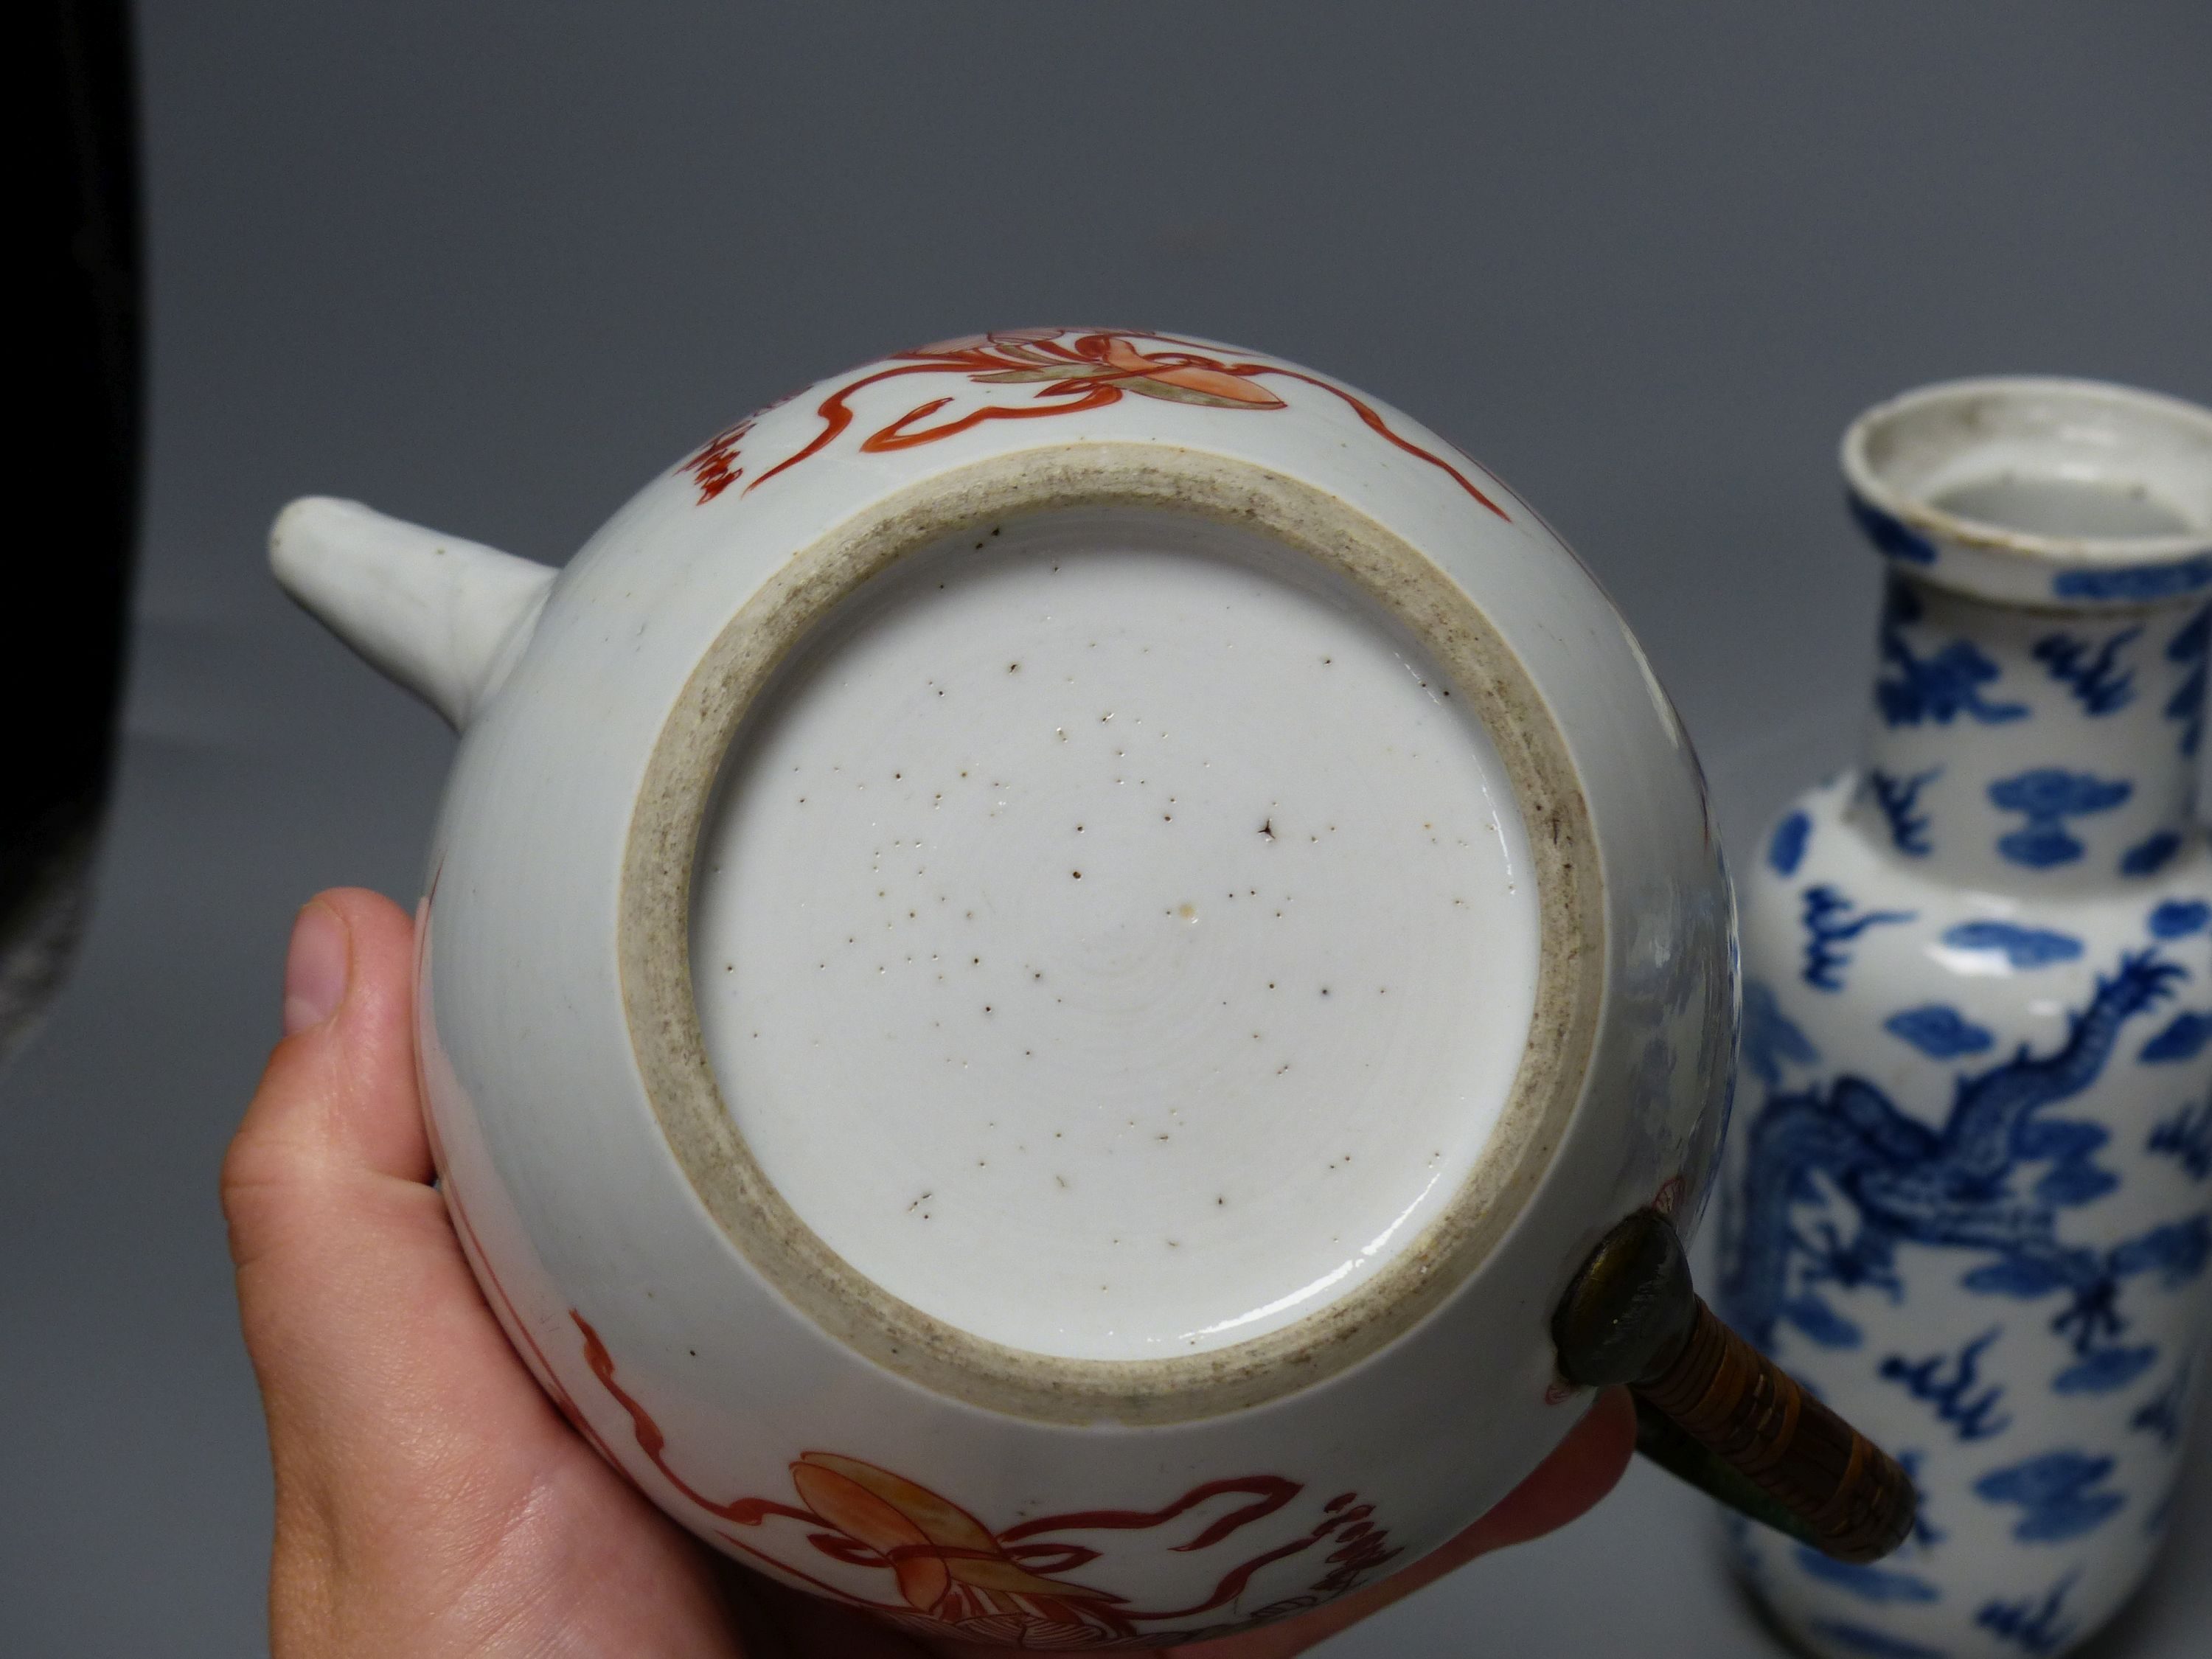 A 19th century Chinese blue and white covered jug, an early 20th century blue and white vase and a - Image 4 of 6